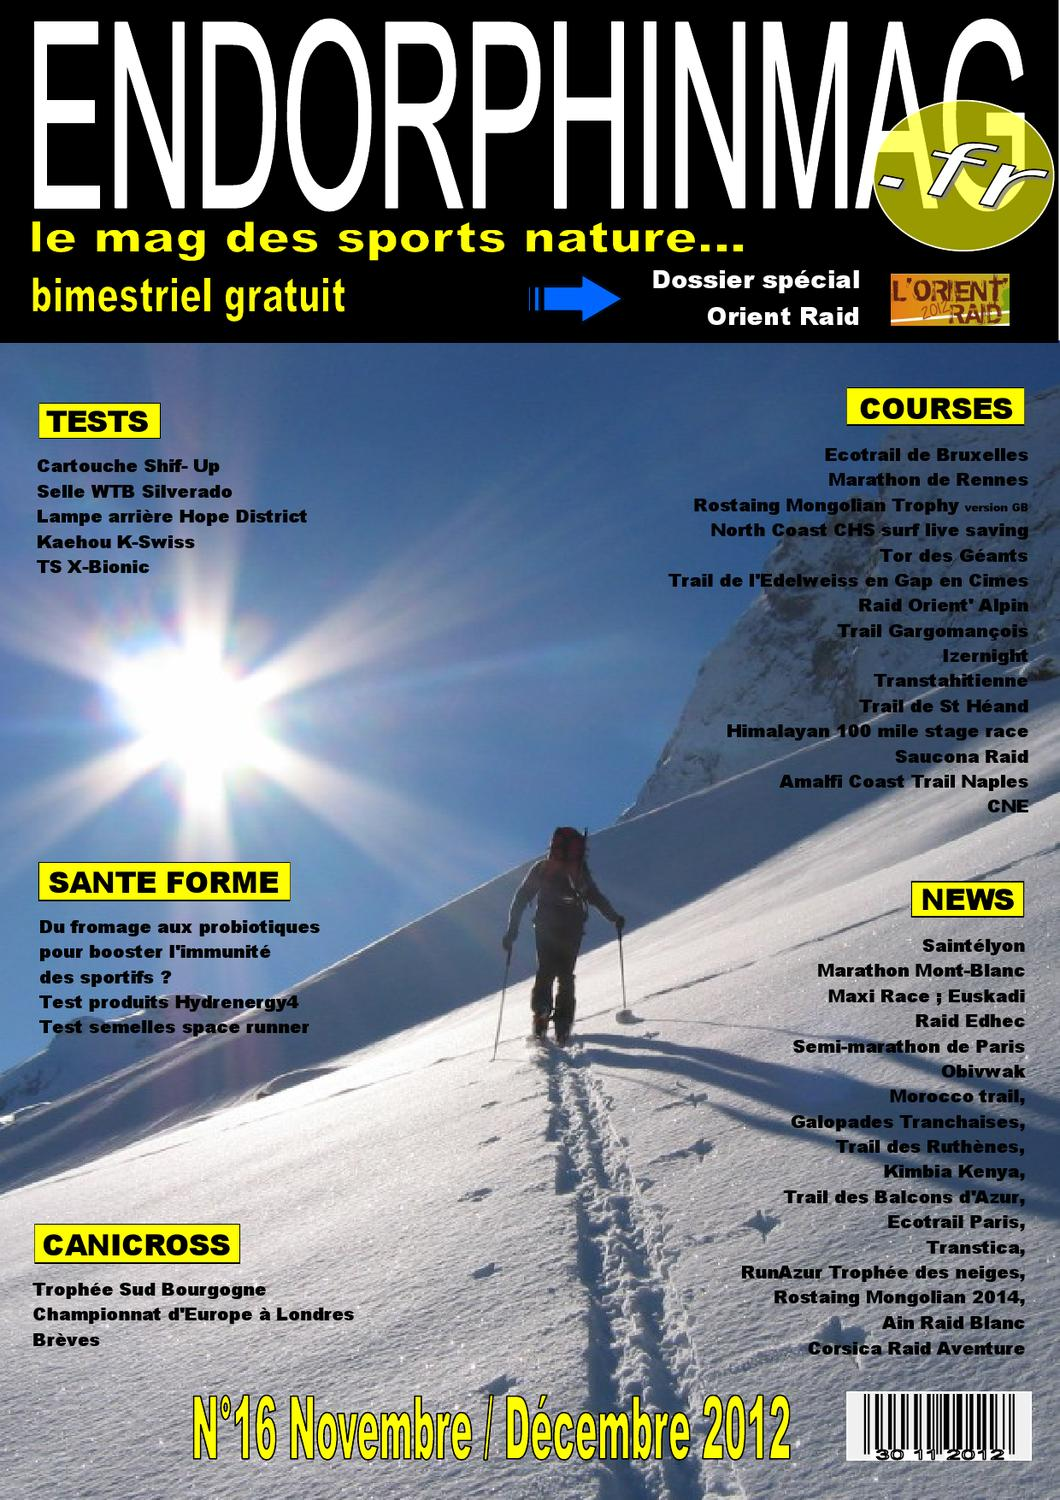 buy popular ea93e 4d254 Endorphinmag novembre decembre 2012 by endorphinmag - issuu